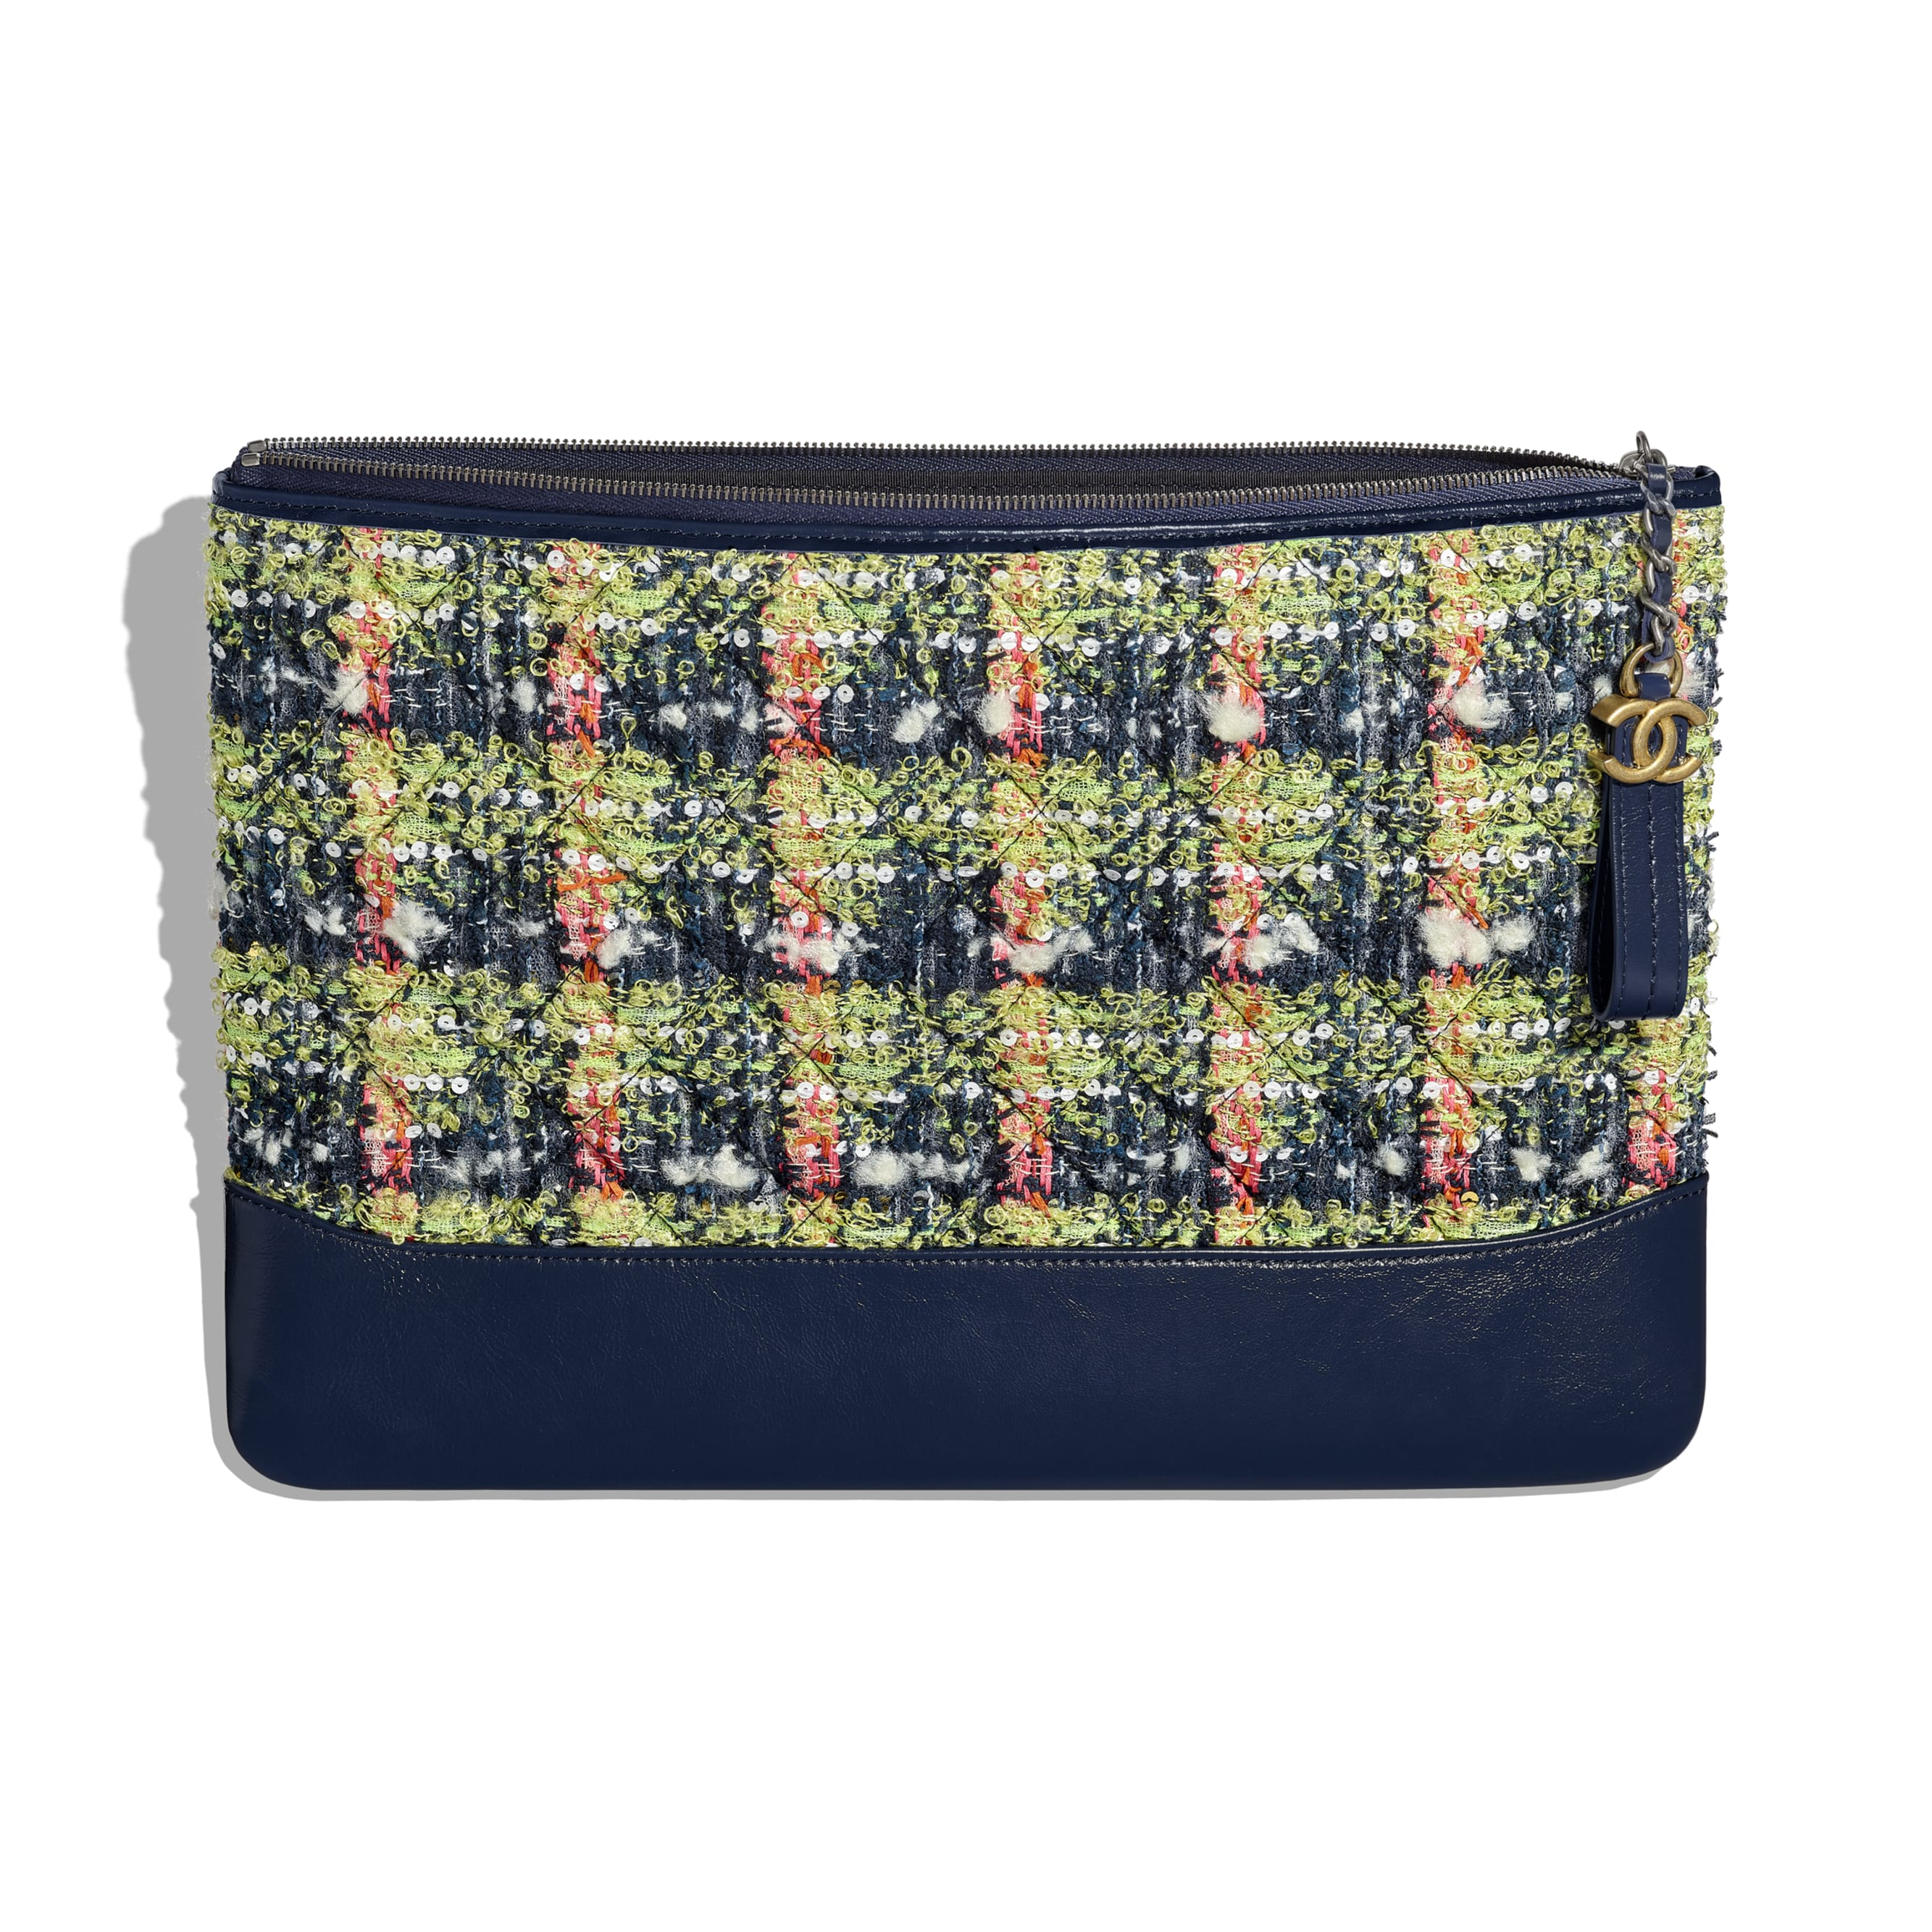 Large Pouch - Navy Blue, Green, Pink & White - Tweed, Calfskin, Gold-Tone & Silver-Tone Metal - CHANEL - Other view - see standard sized version